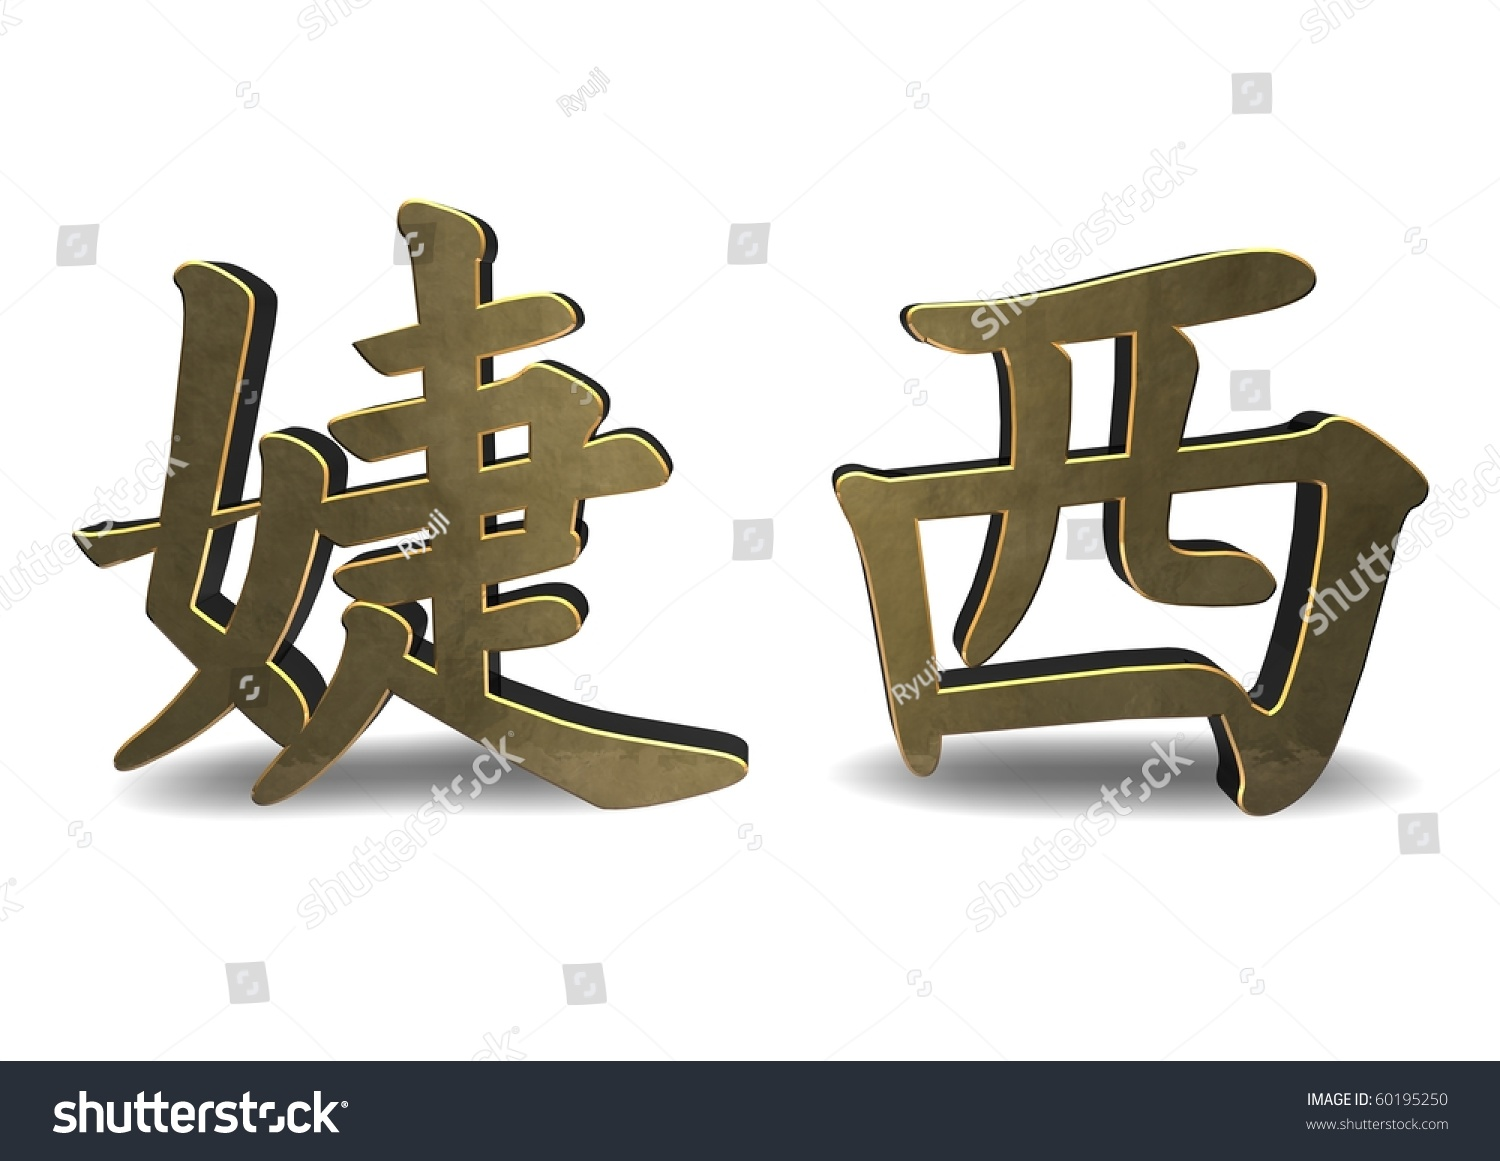 Jessie chinese character symbol isolated on stock illustration jessie chinese character symbol isolated on white biocorpaavc